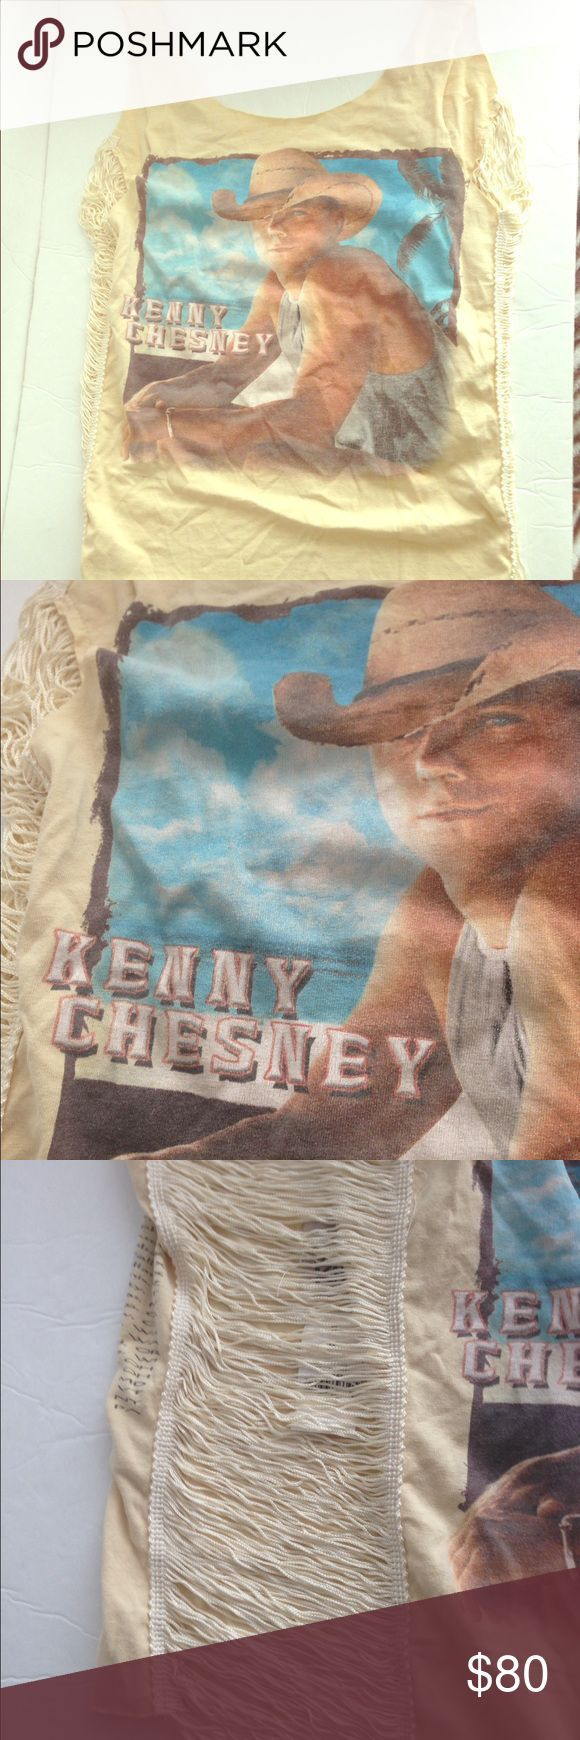 Kenny Chesney Furst of a Kind tour tank top-NWT! Kenny Chesney Furst of a Kind tour tank top-NWT! One size fits most. LF Tops Tank Tops